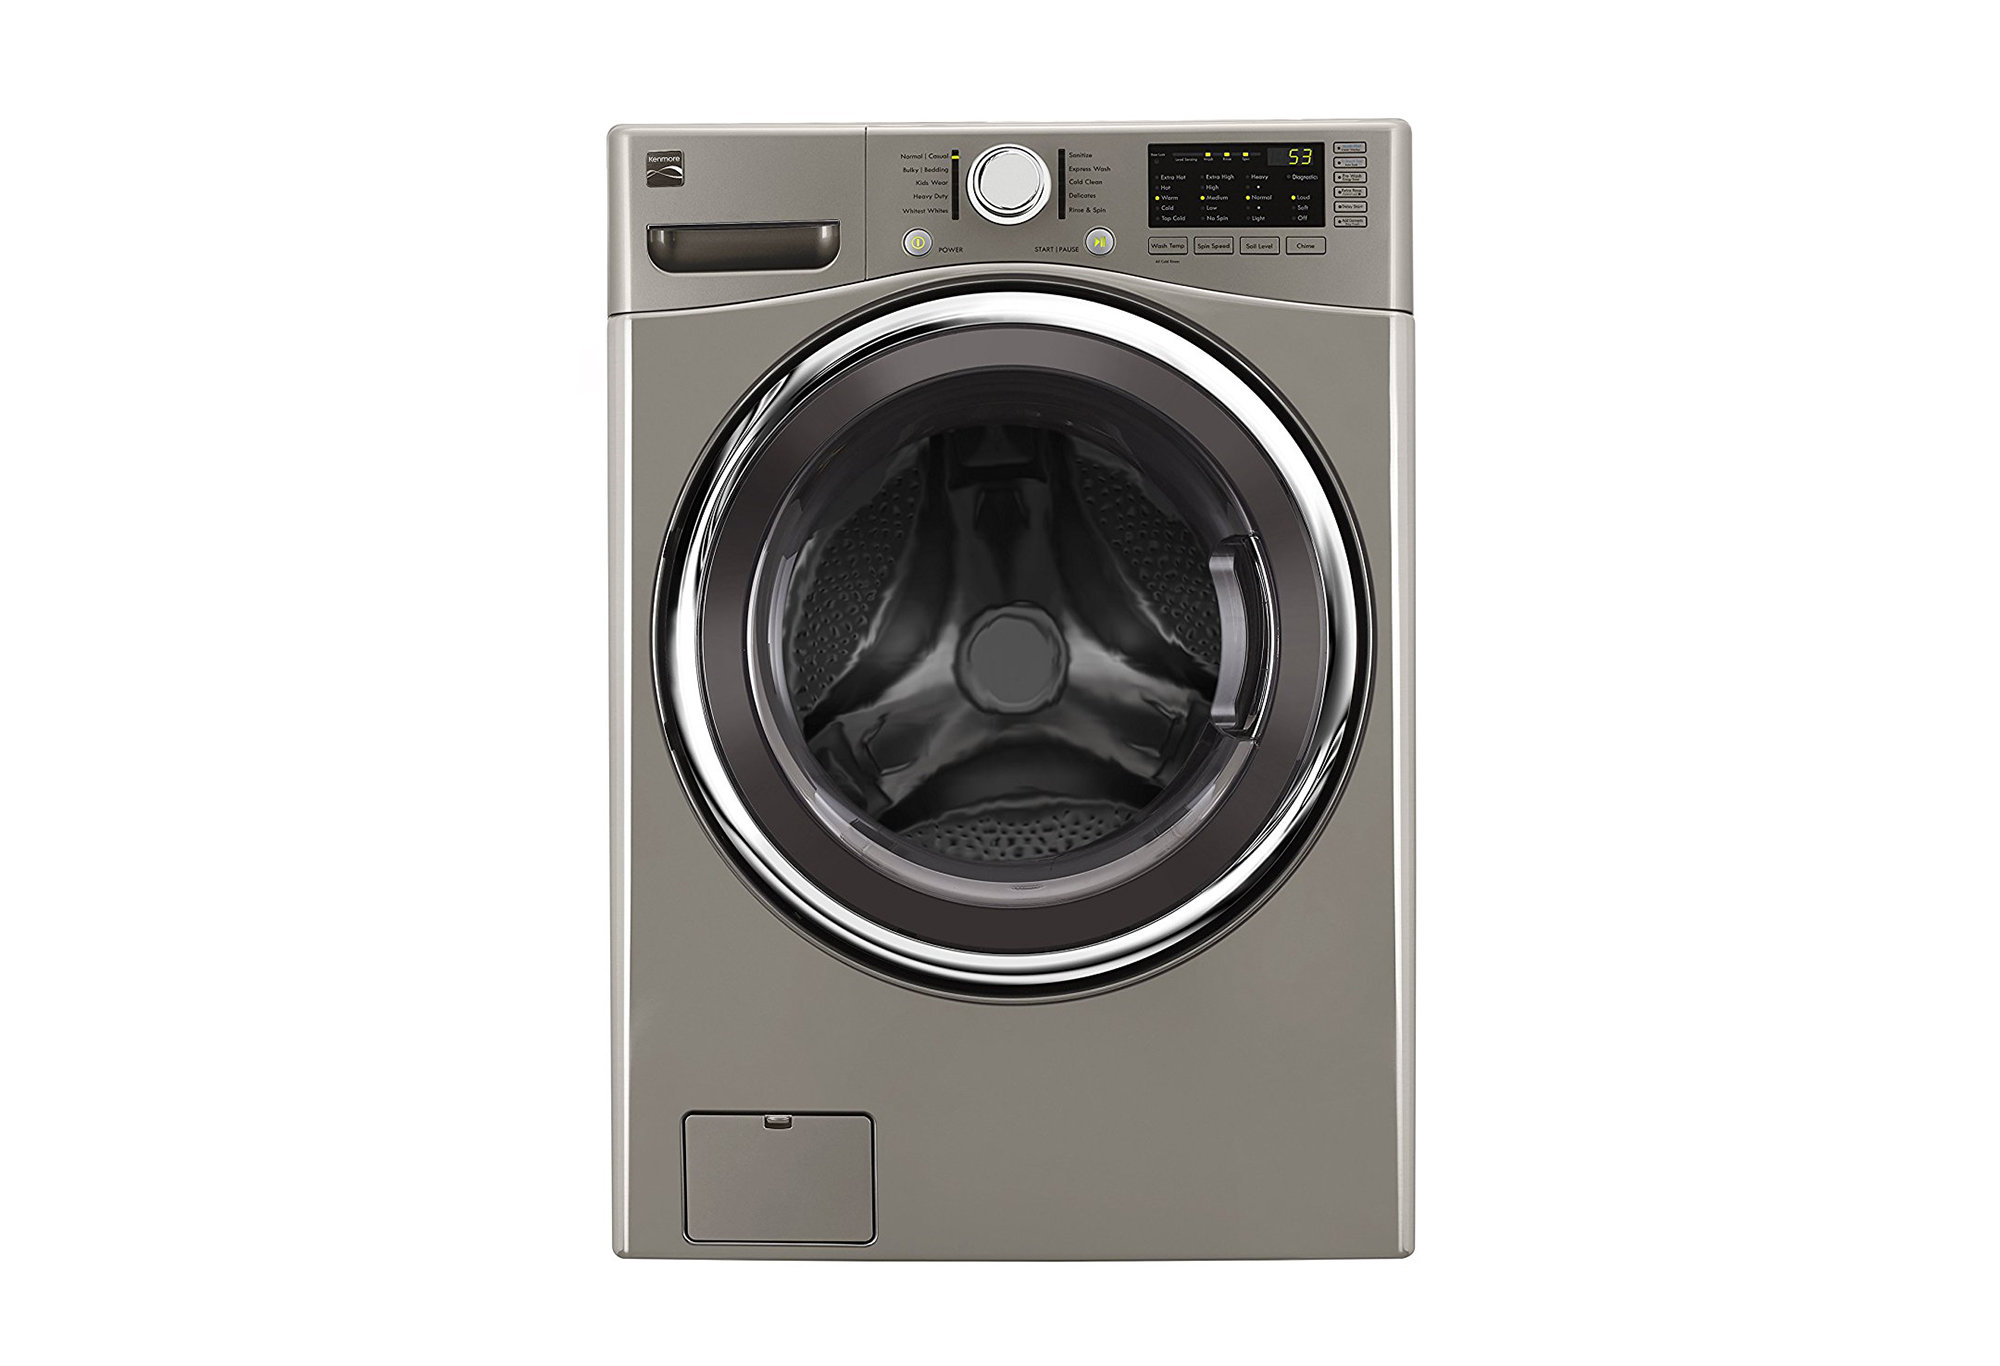 The Insanely Good Household Appliances on Our Black Friday and Cyber Monday Wish List 8c9262dc7e1ee56f8e2fce8184c280b5